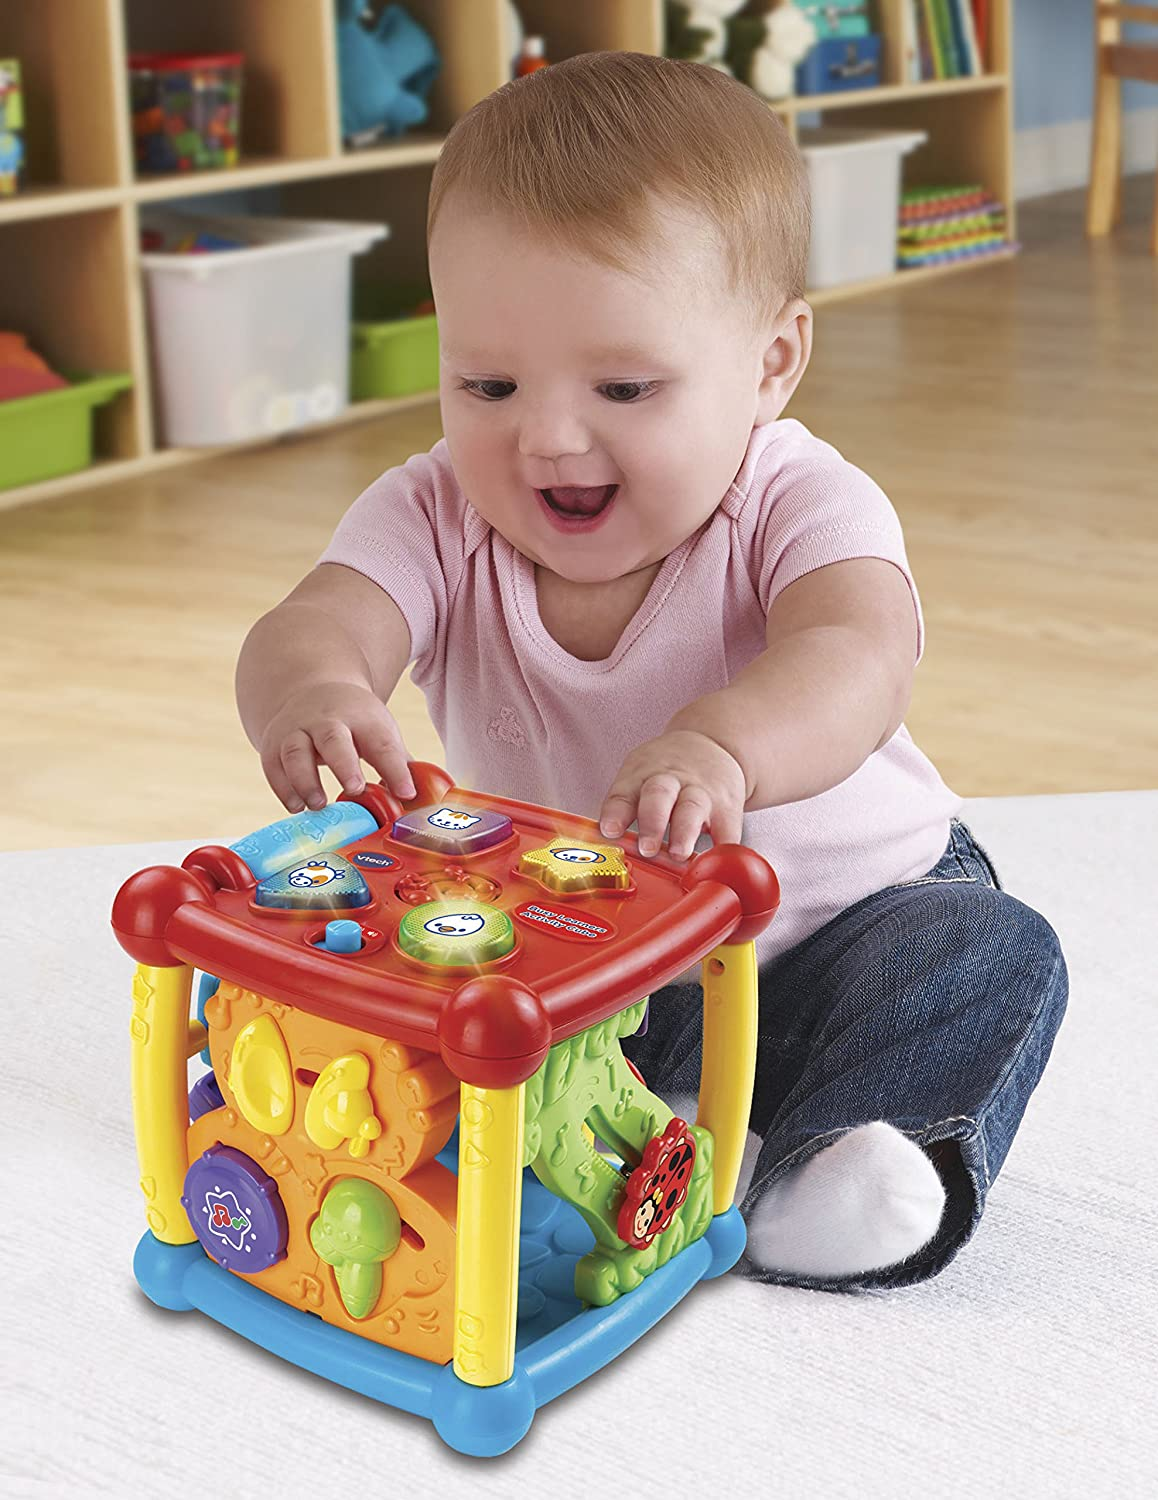 Vtech Baby Activity Center Cube Kids Learning Toys Animal Sounds Shapes Toddler